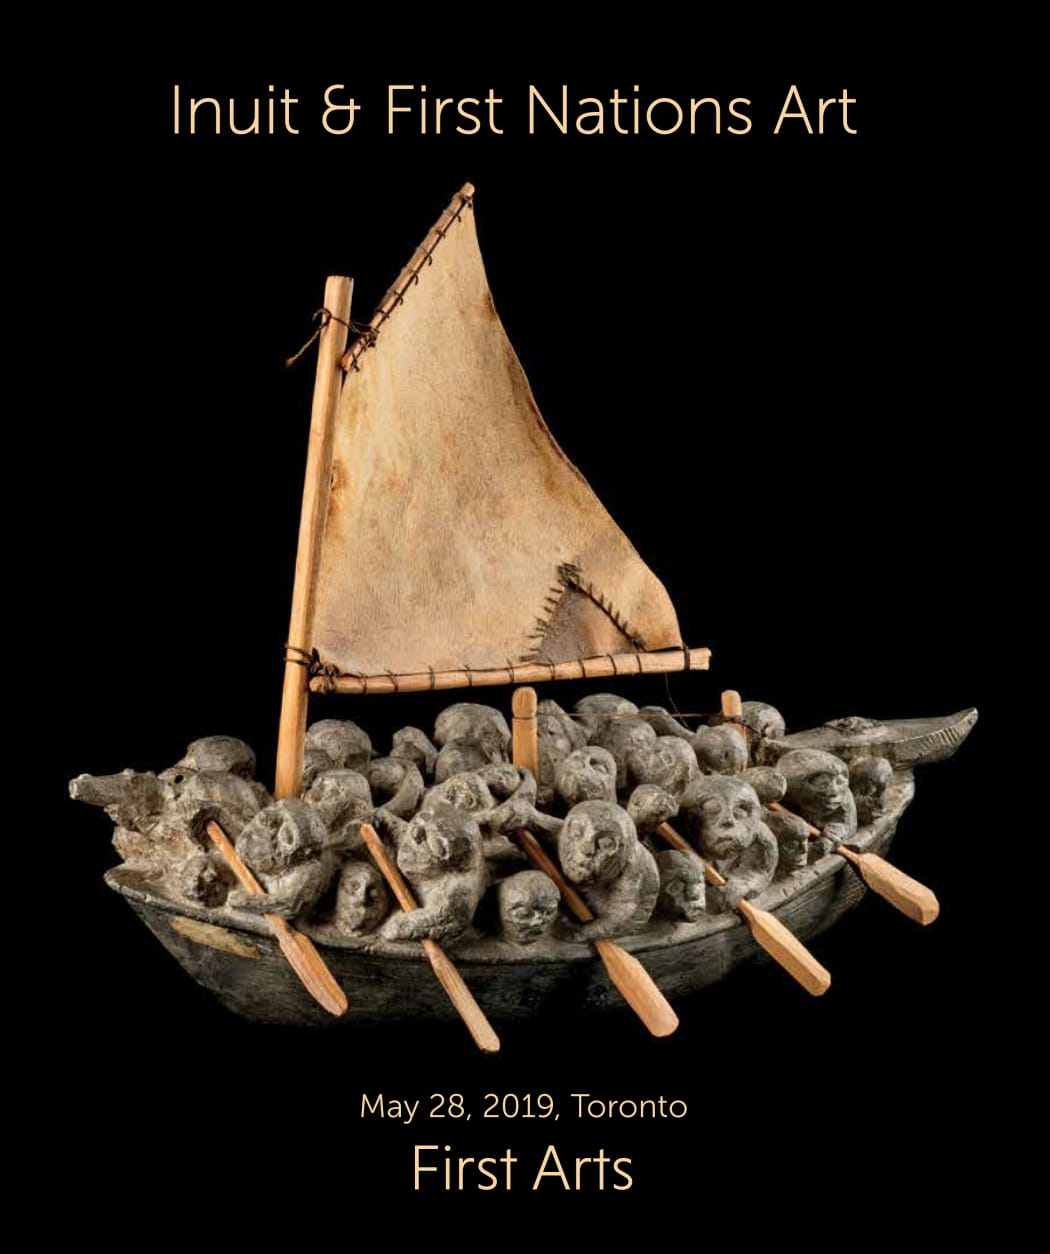 New Company Smashes World Record Auction Price for a Work of Inuit Art